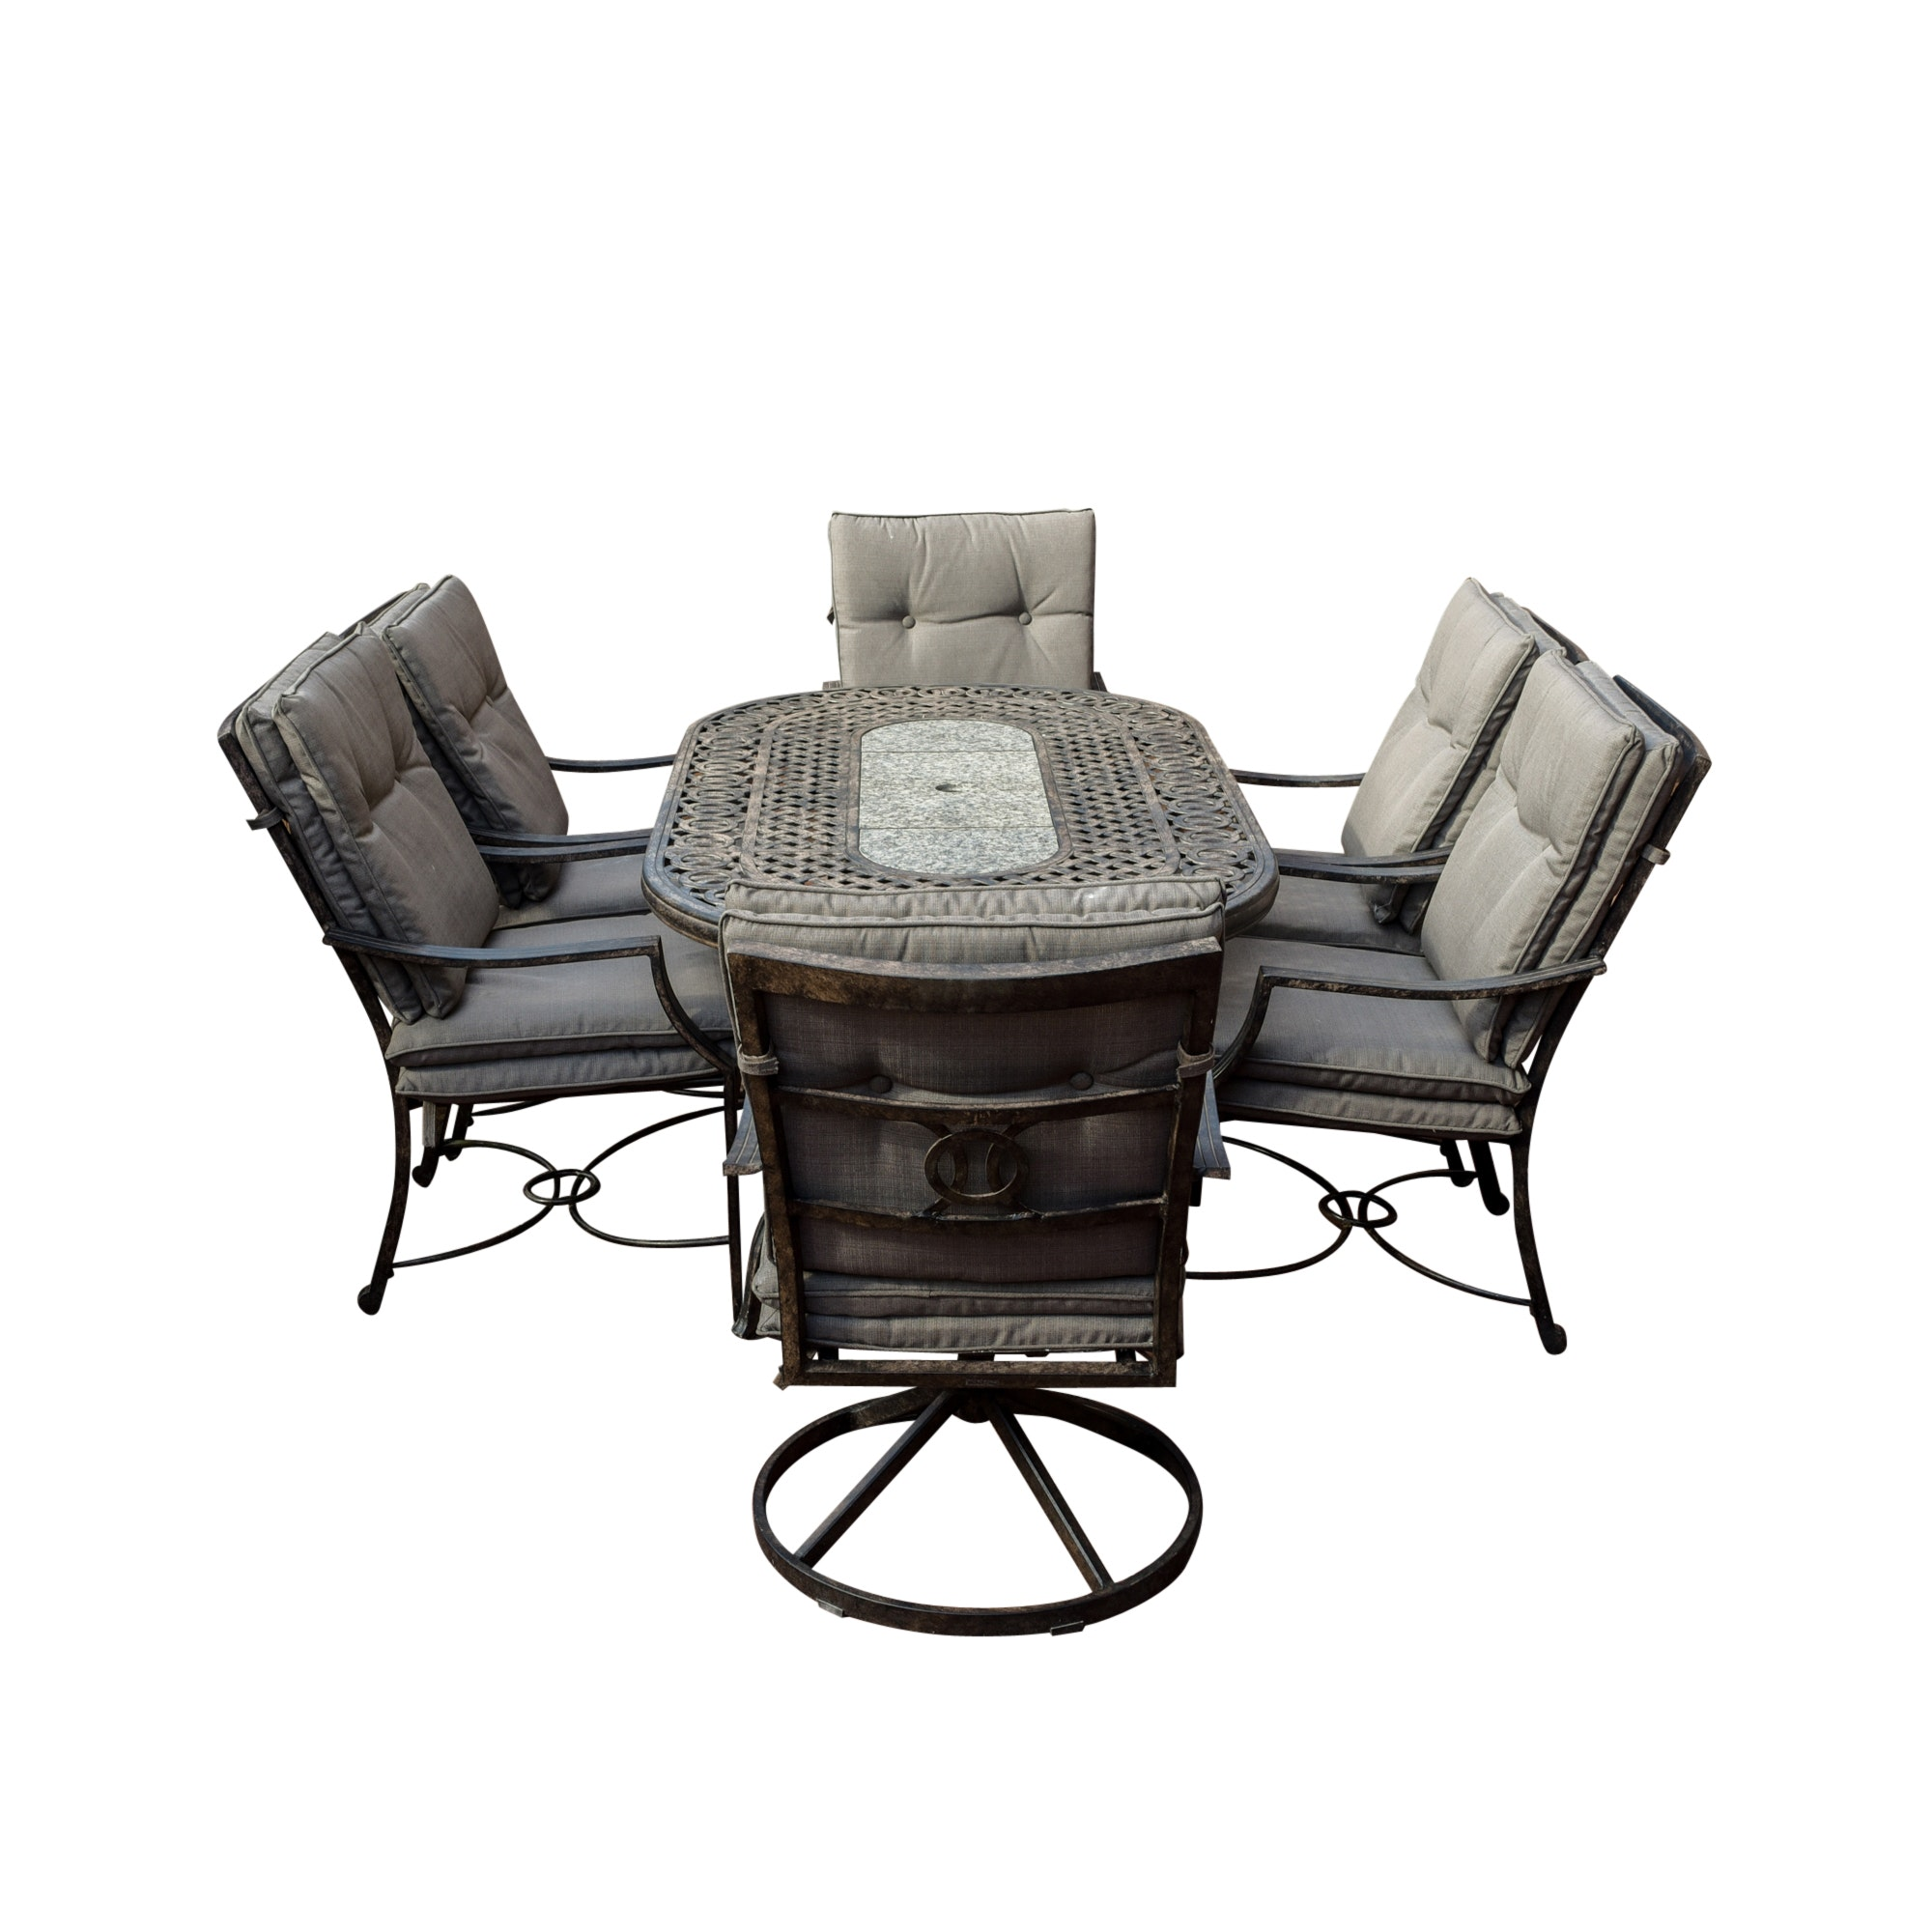 Outdoor Dining Set and Patio Chest